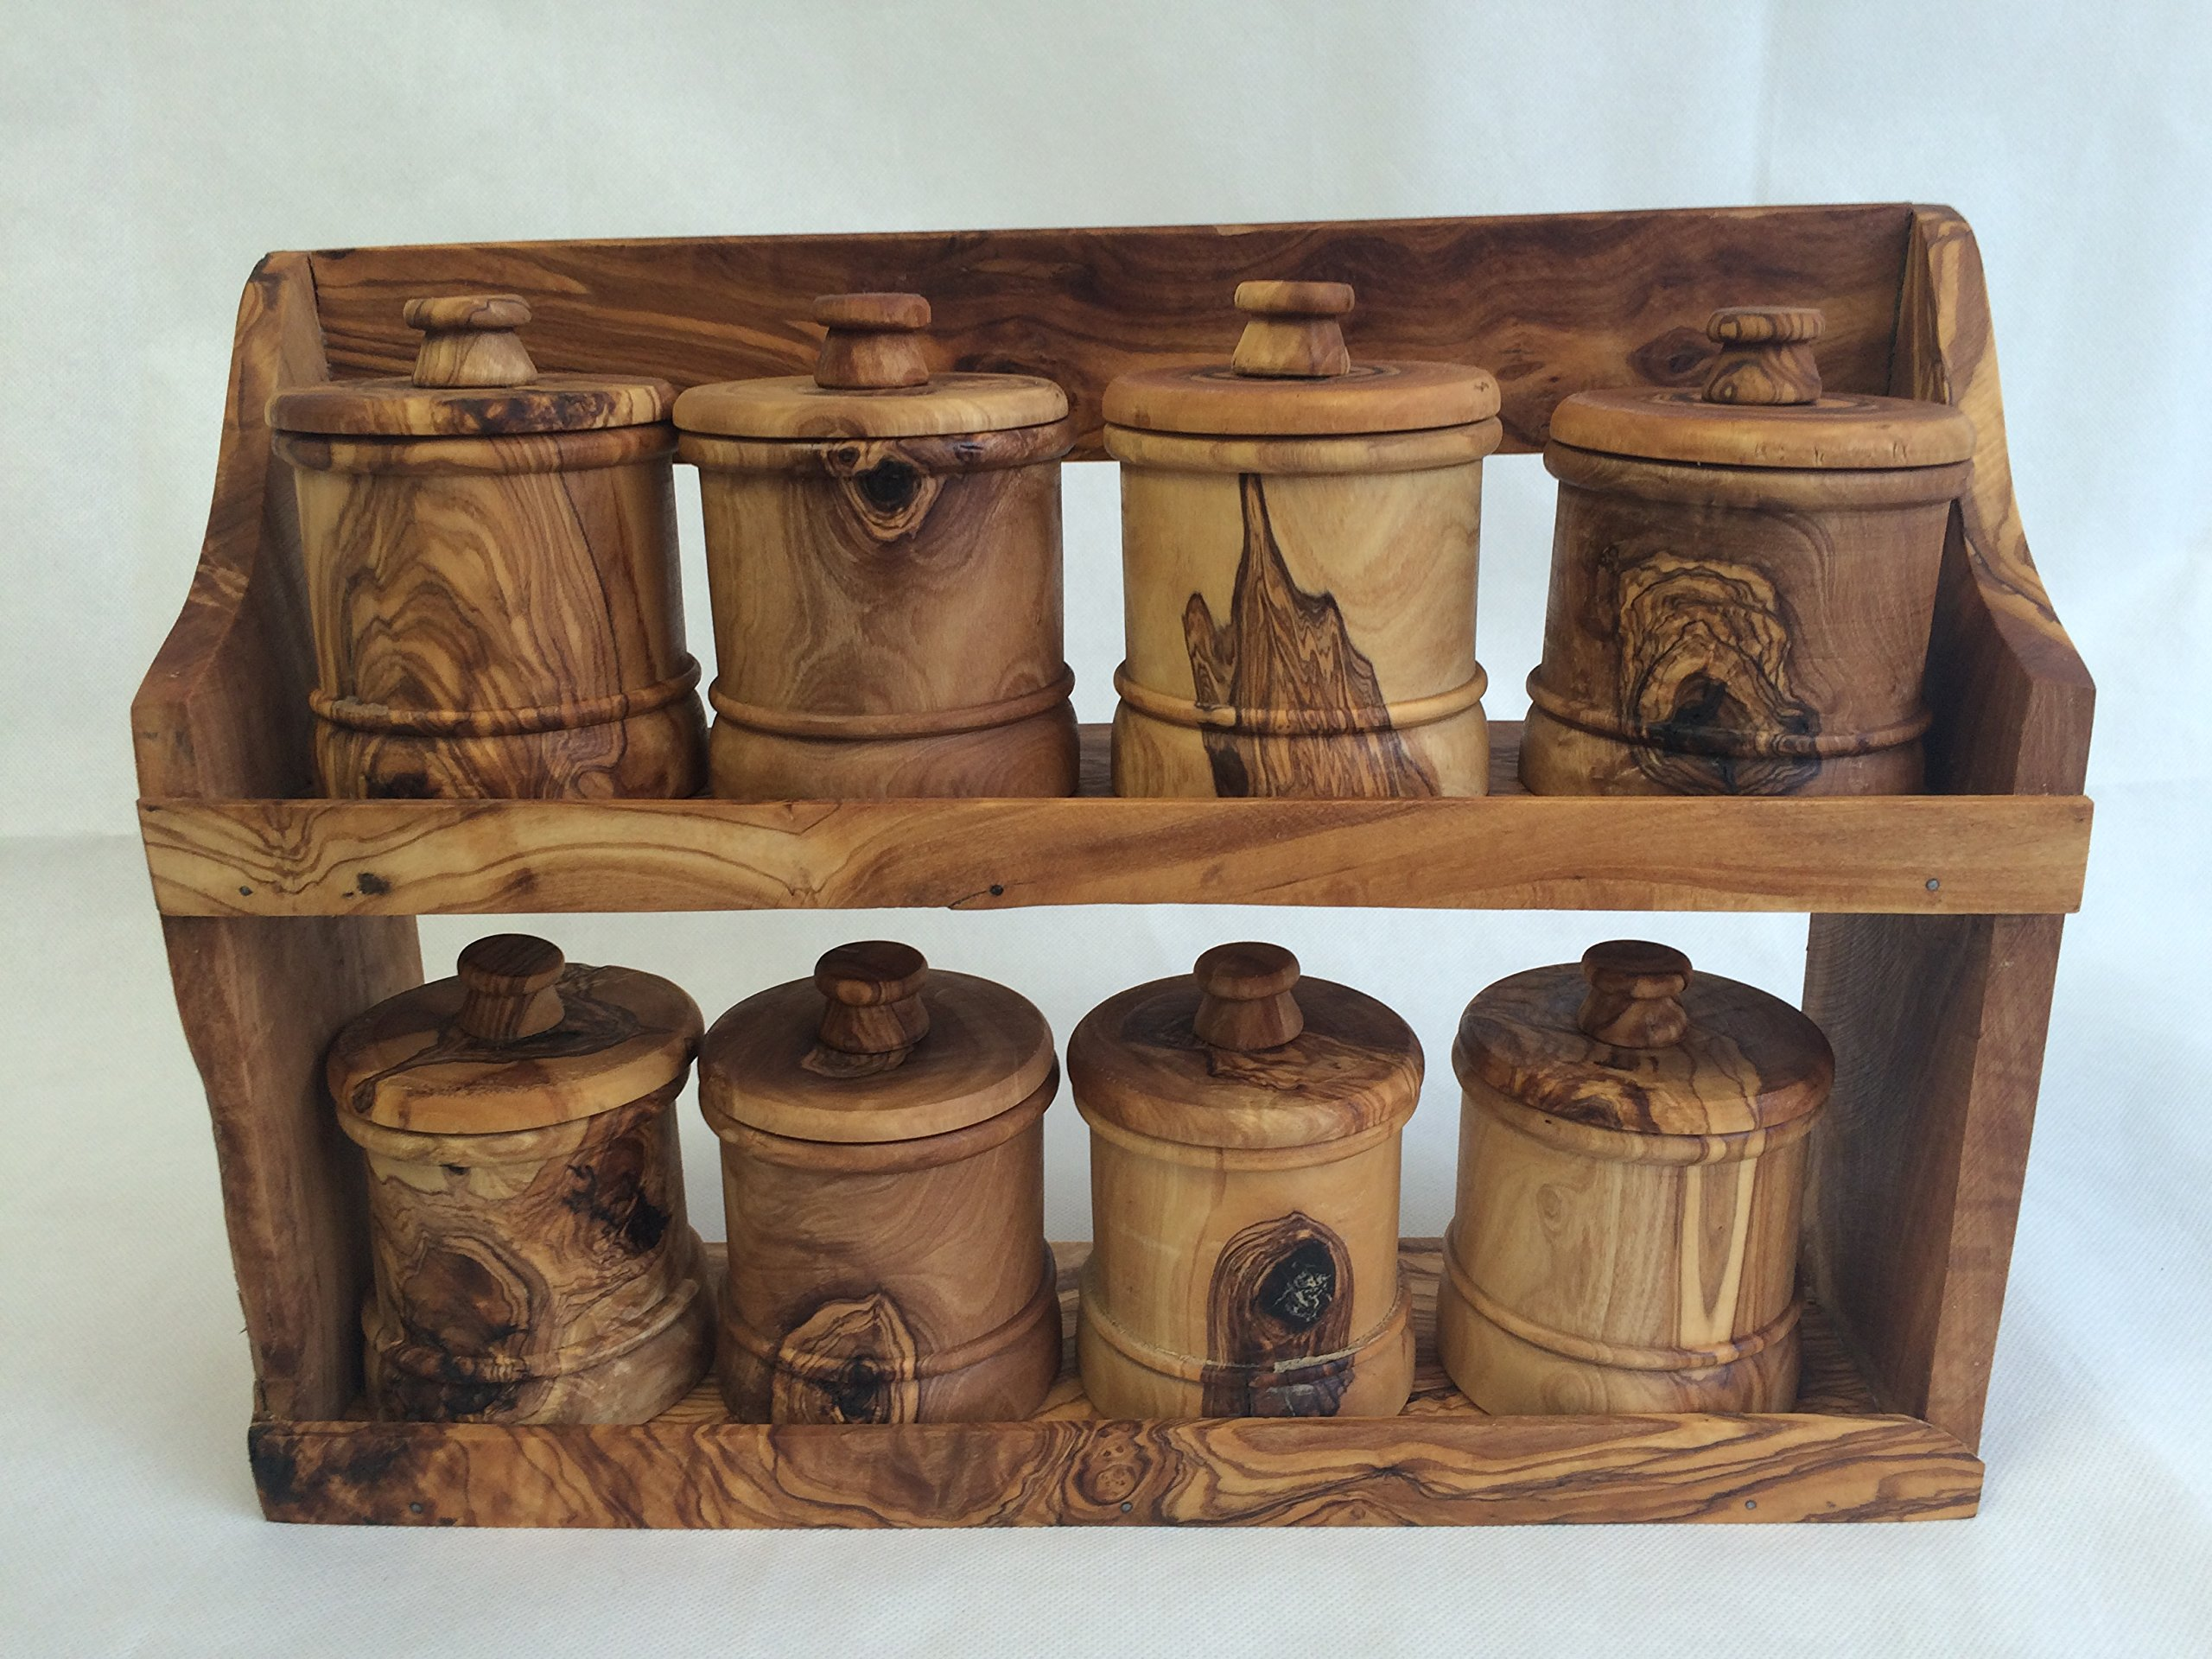 Olive Wood Spice Rack with 8 Jars